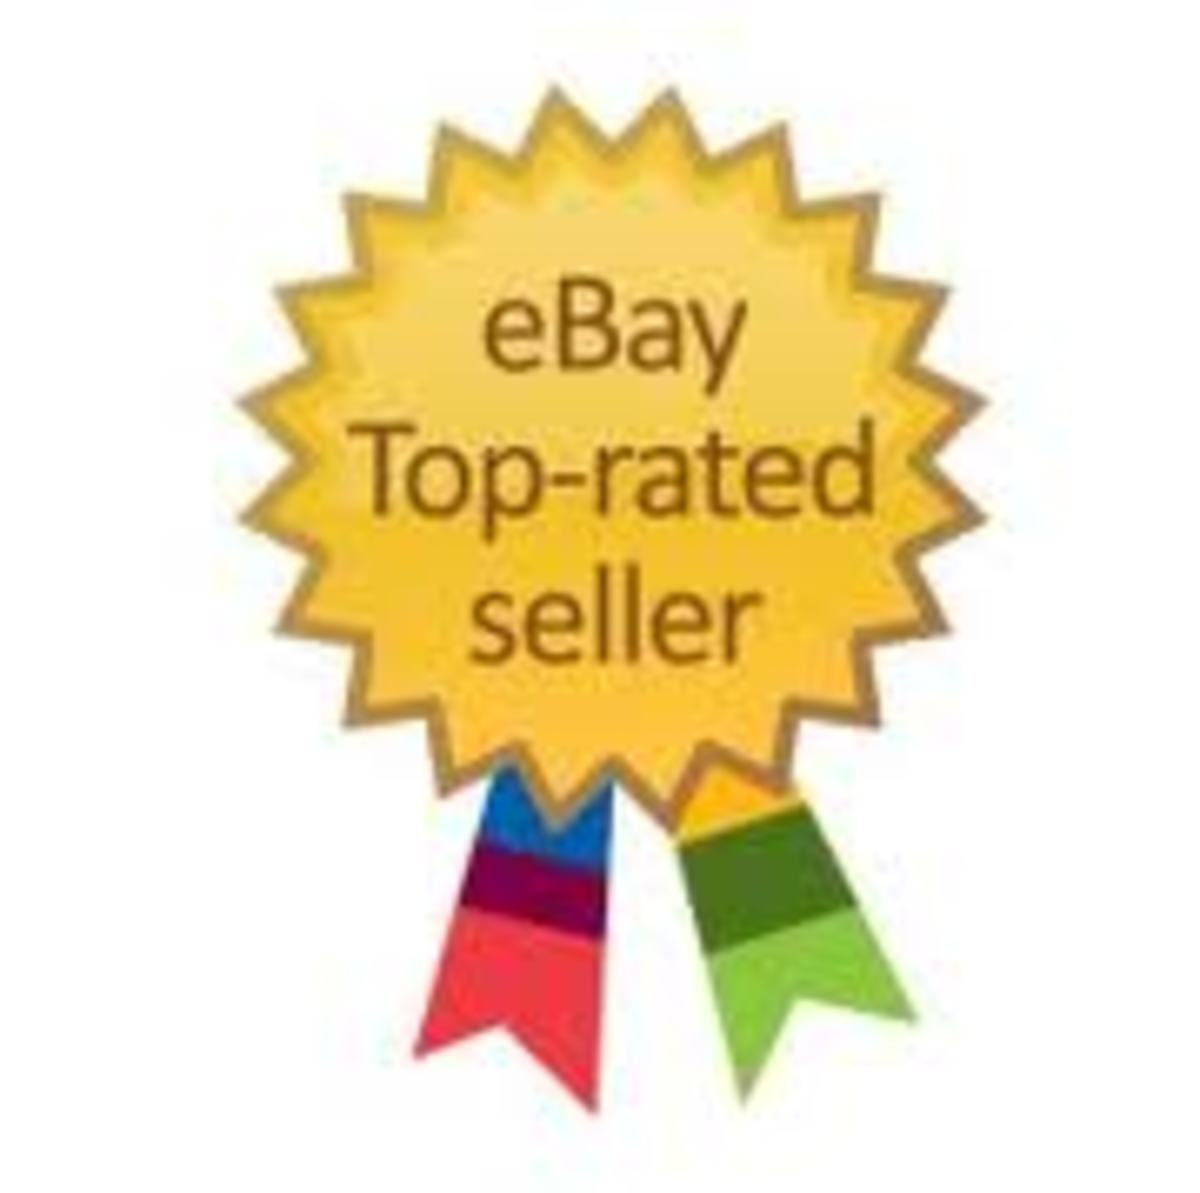 ebay's Top-Rated Sellers Icon